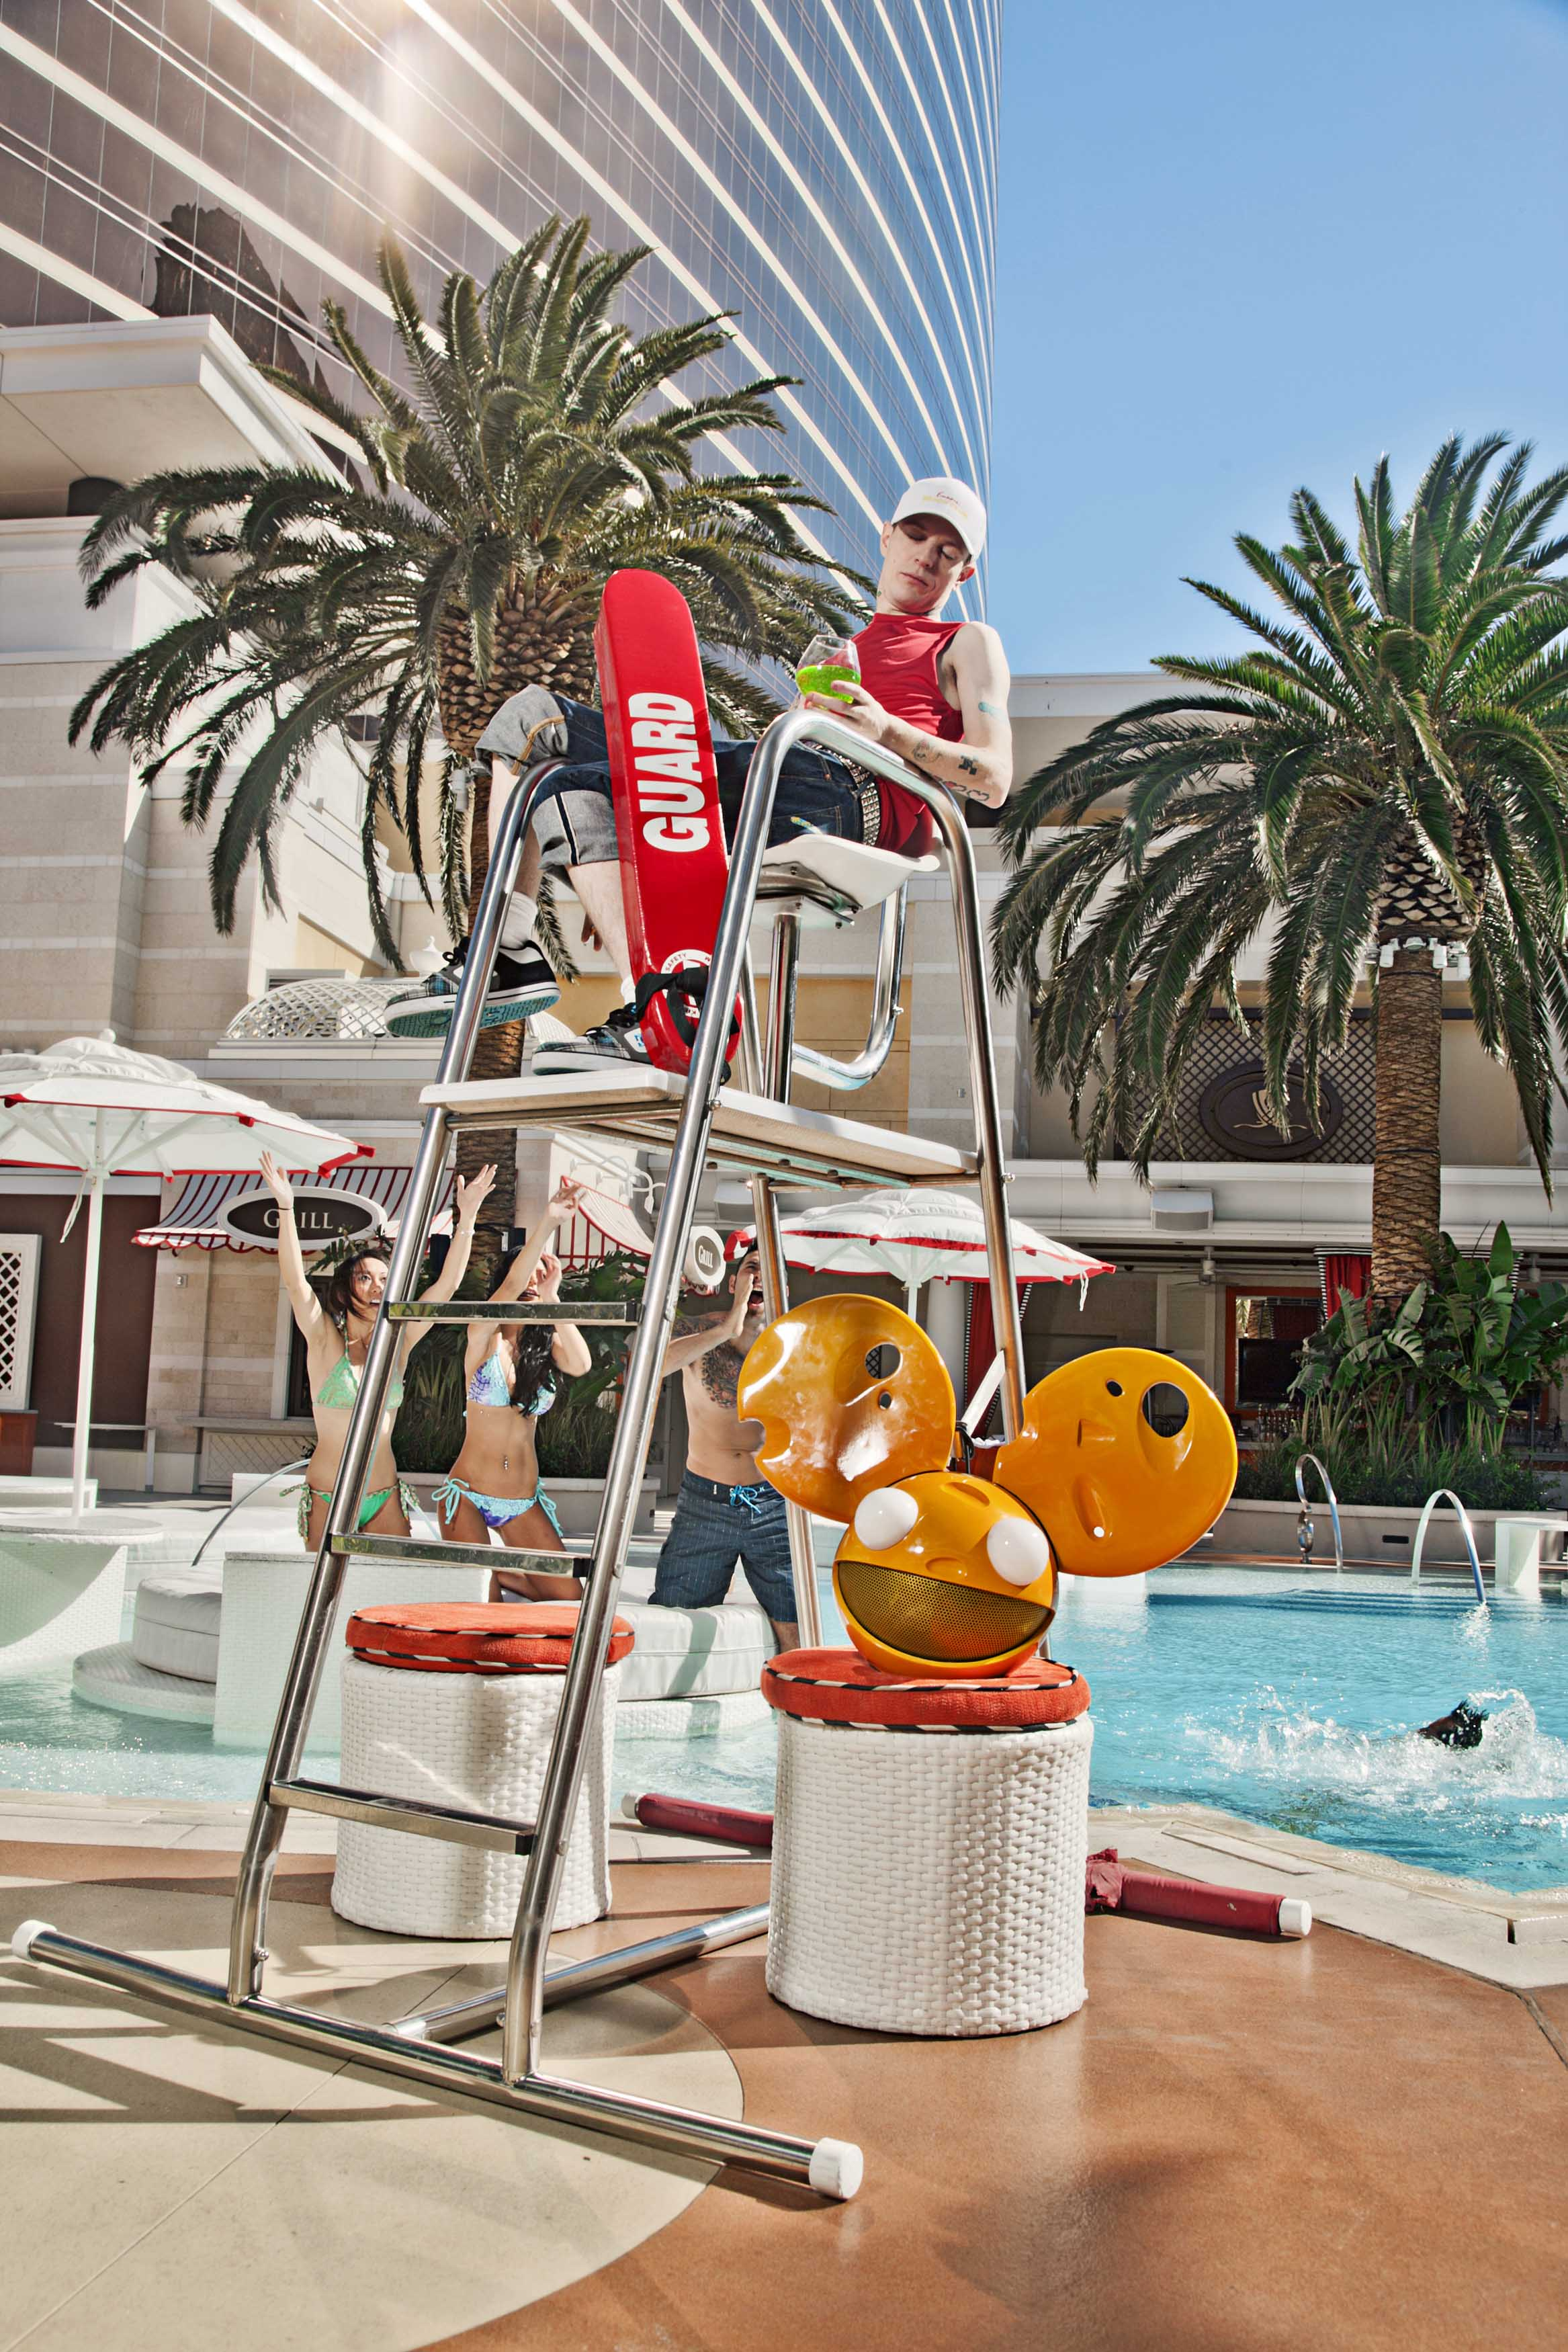 Electronic artist deadmau5 tries his shot as a lifeguard at Encore Beach Club during his job search at Wynn Las Vegas. Deadmau5 has developed an exclusive partnership for 2012 with XS, Encore Beach Club, and Wynn Las Vegas. Photo credit: Brian Brown Photography.